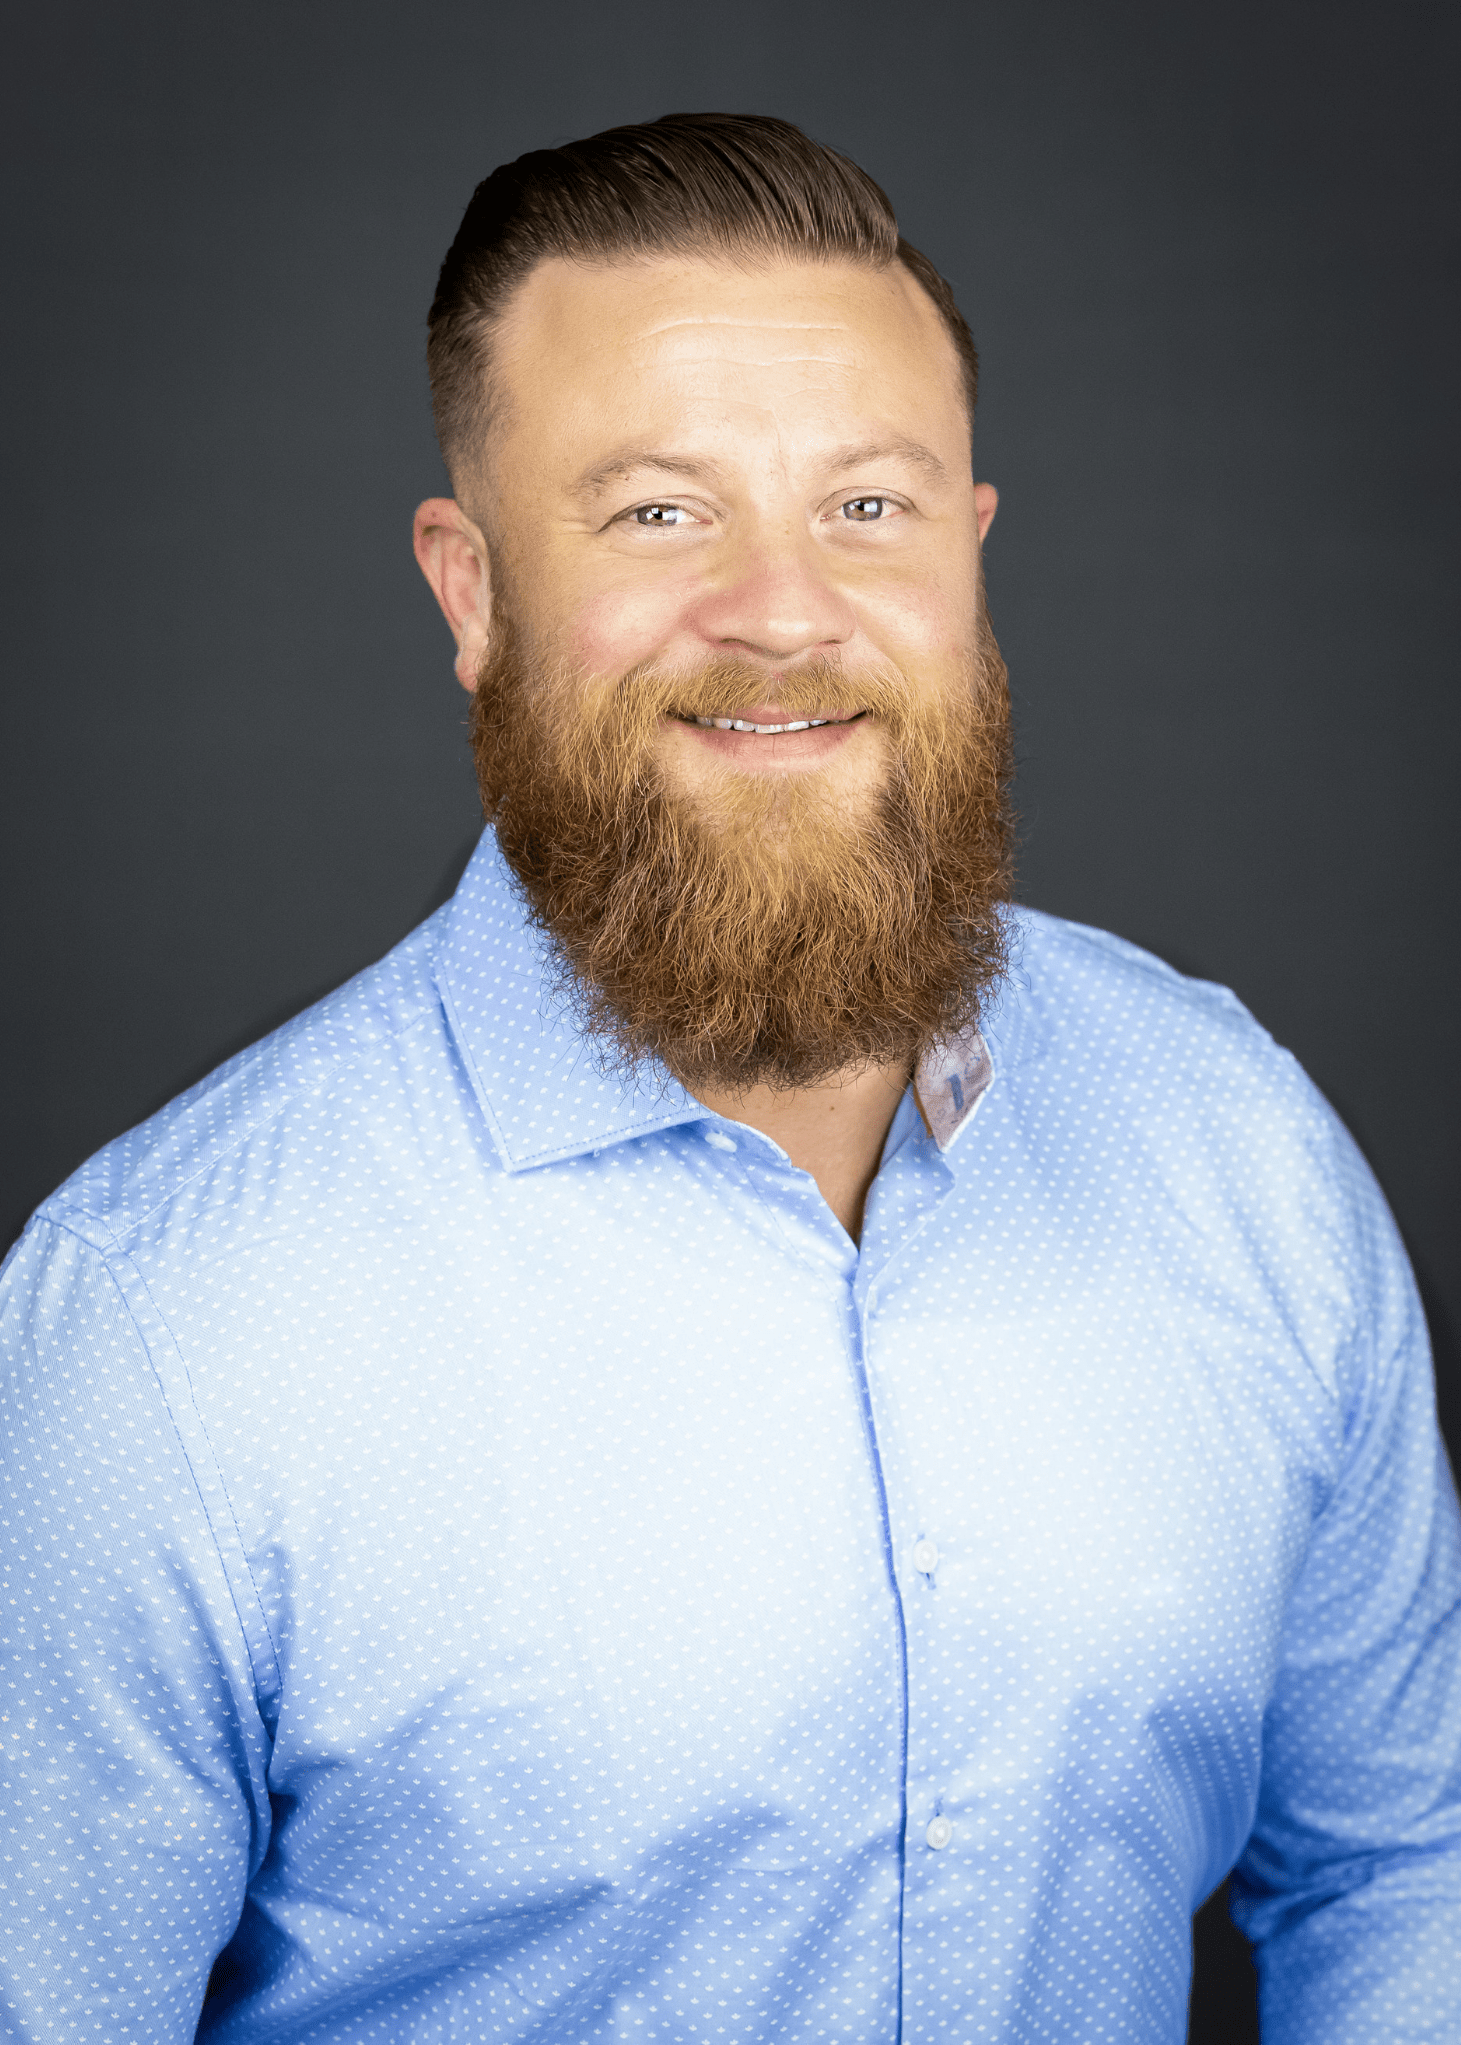 Nick Ricci, Windermere Real estate, Trusted agent, real estate, Whidbey Island, Washington, Oak Harbor, house hunting, Island life, buy, sell, invest